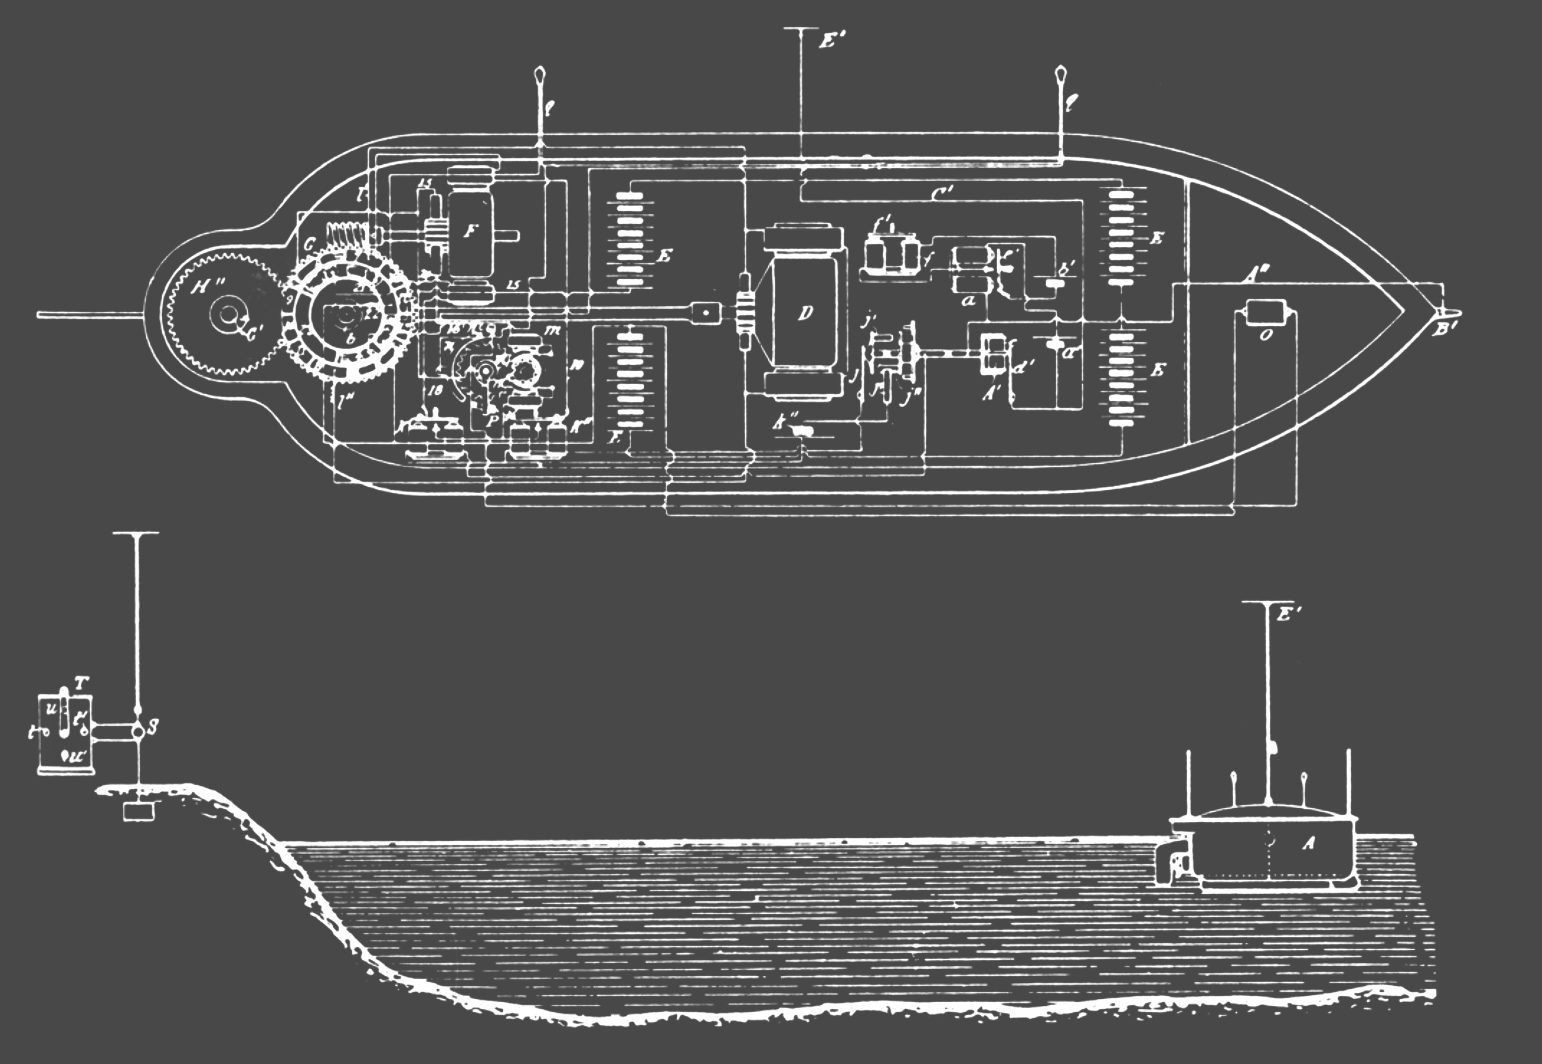 Schematic illustration of Tesla's system of remotely guided boat shown in Madison Square Garden in 1898.